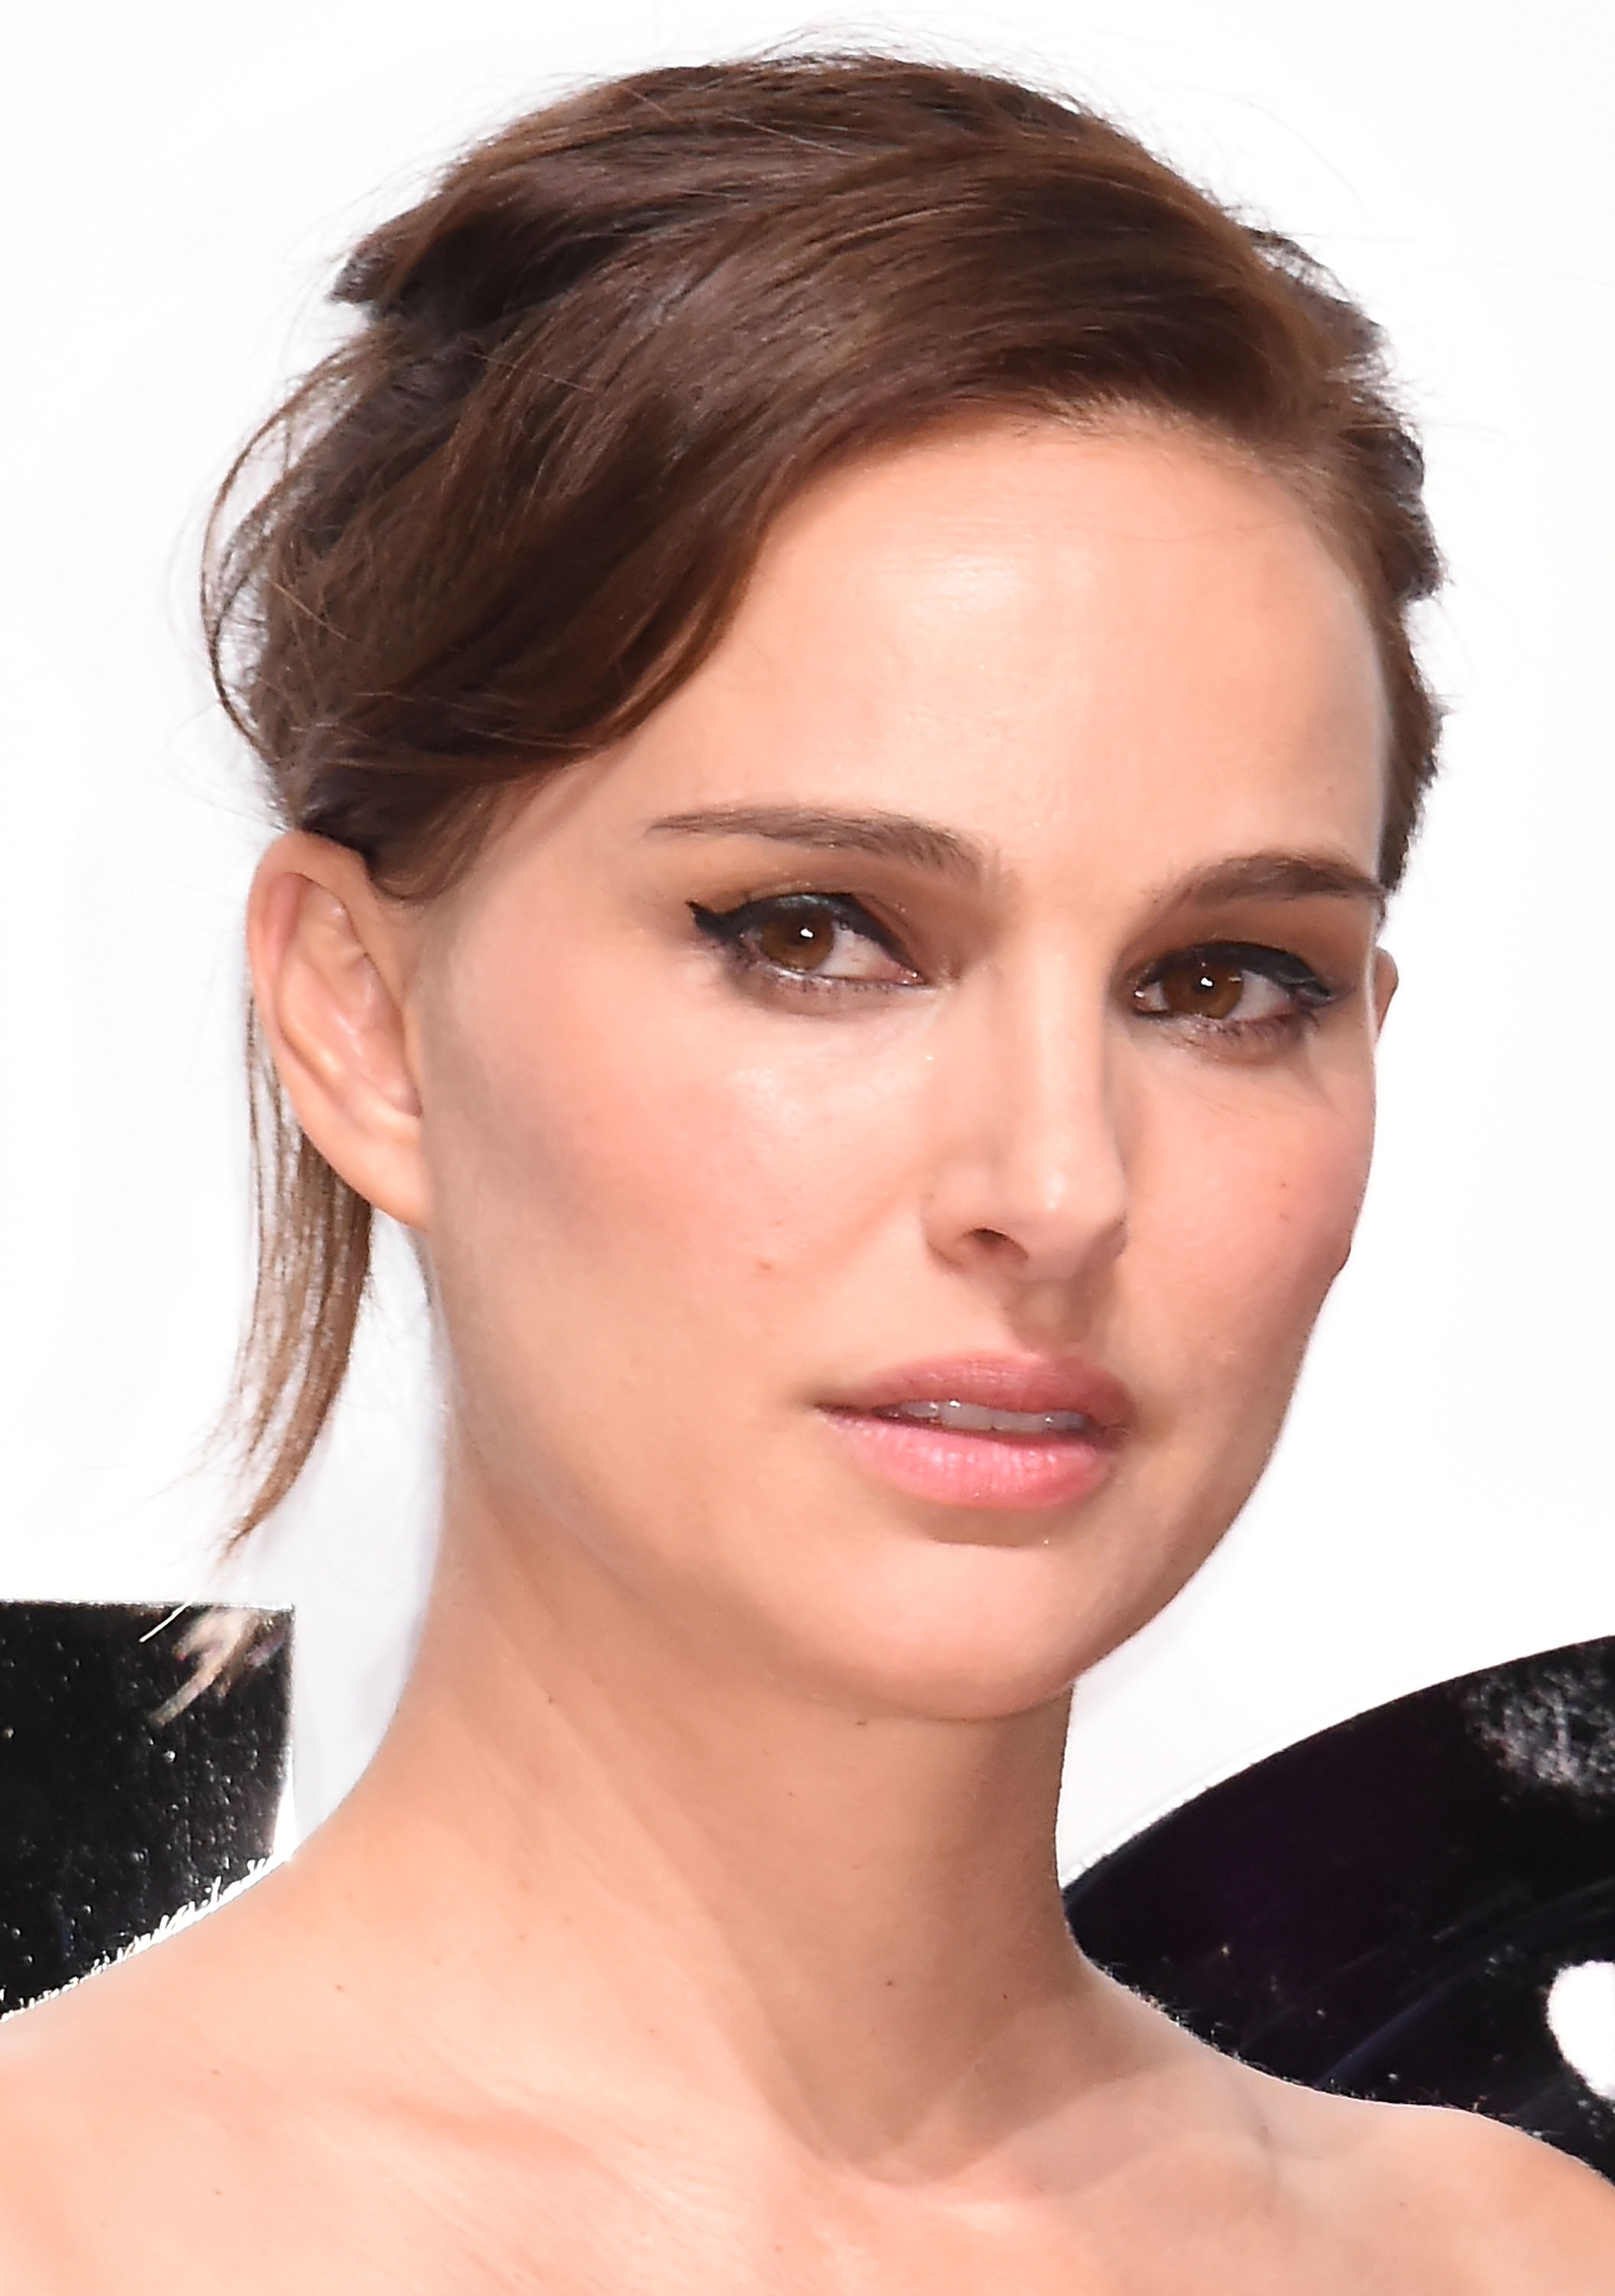 "<p>Many paid-up celebrities swear by expensive creams and complex beauty routines to maintain a flawless complexion but for actress <a href=""https://style.nine.com.au/natalie-portman"" target=""_blank"" draggable=""false"">Natalie Portman</a> the key to her lit-from-within look are her dietary choices.</p> <p>The Academy Award-winner and long-time vegan revealed that since she adopted the plant-based diet six years ago she has been free of breakouts.</p> <p>""I'm vegan and I found my skin was much, much better than when I was a vegetarian,"" <br /> <br /> ""I cut out dairy and eggs, and I never had a breakout after. It's personal; everyone has different sensitivity. I also did it when I was 30, so it might have been an age thing."" Portman told <em><a href=""https://www.thecut.com/2017/08/natalie-portman-miss-dior-perfume-beauty-routine-interview.html"" target=""_blank"" draggable=""false"">The Cut.</a></em></p> <p>The <em>Jackie</em> star's flawless complexion has made her a red-carpet standout since she burst into the spotlight over 20 years ago. </p> <p>Her first major starring role in <em>Star Wars: Episode I-The Phantom Menace</em> in 1999 saw her favour youthful beauty looks such as a minimal complexion and pink glossy lips. Later evolving into a sleek and polished wife, mother and Oscar-winner, lighting up the red carpet with her smouldering eye looks and chic hairstyles.</p> <p>Click through to see the beauty evolution of Natalie Portman.</p>"